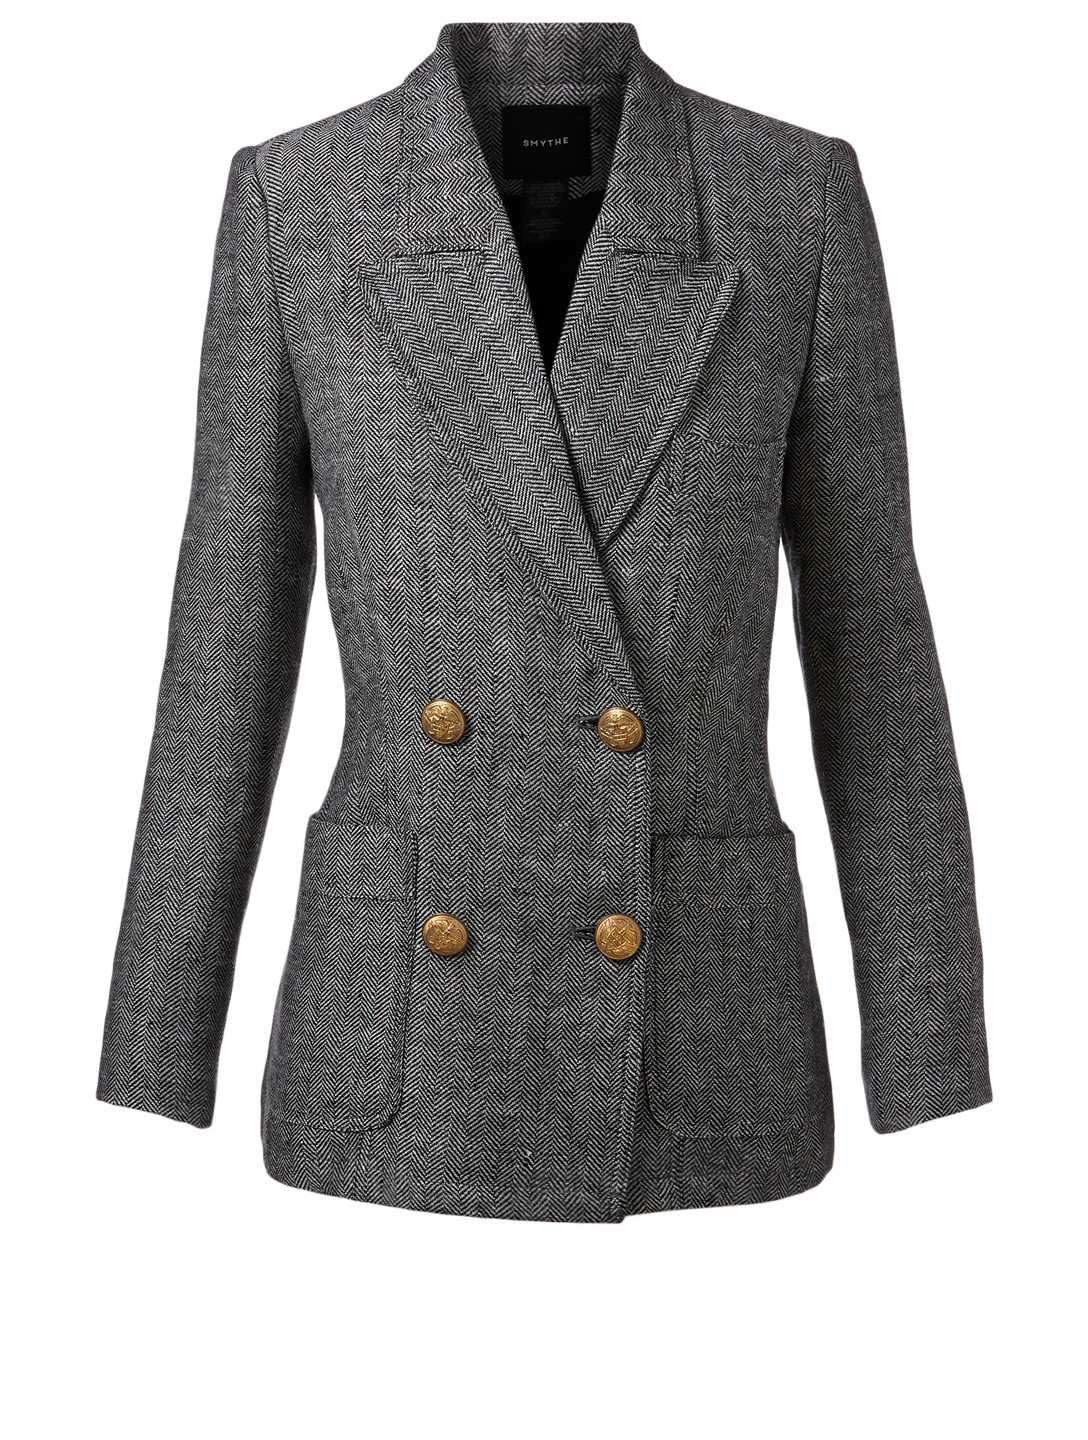 b9abe5f2cc84 SMYTHE Unstructured Linen Double-Breasted Blazer In Herringbone Women's  Multi ...